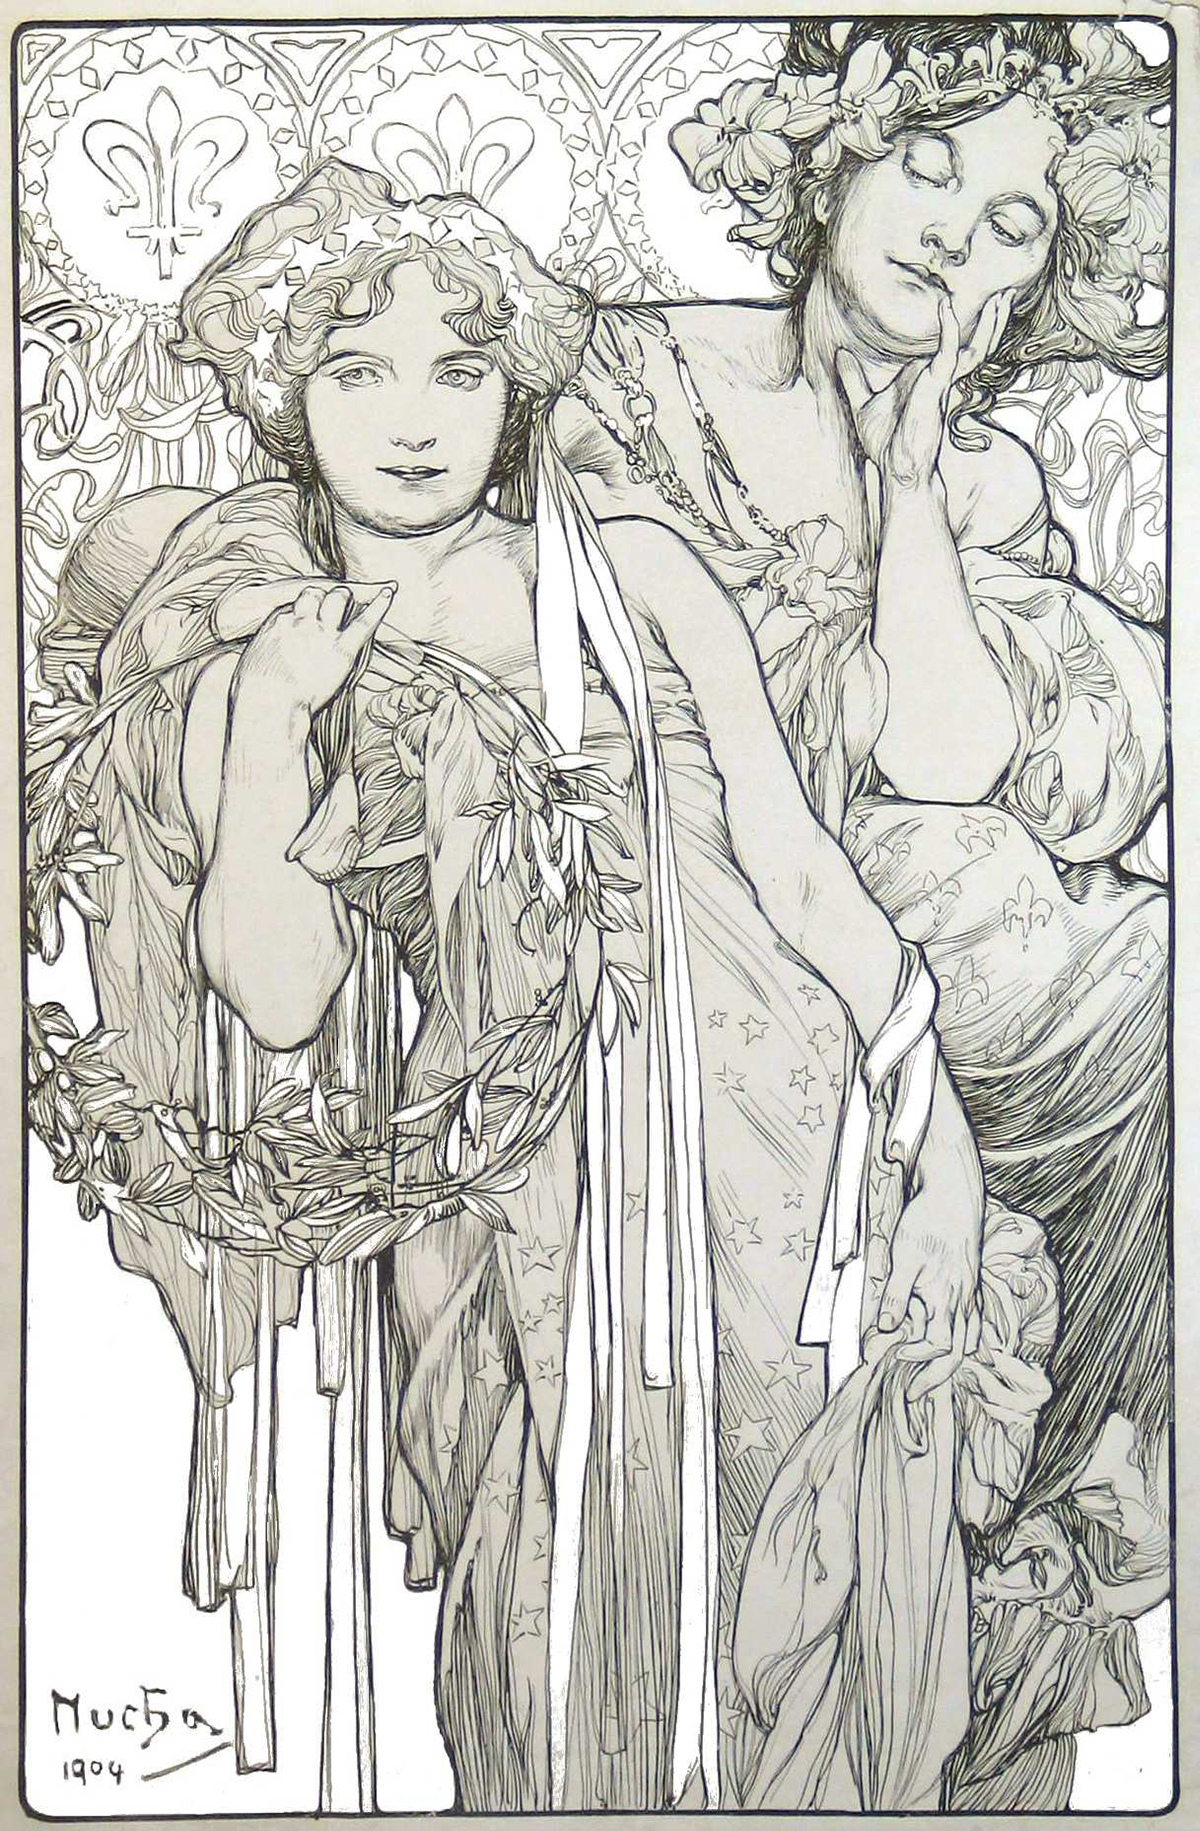 A coloring page of two women